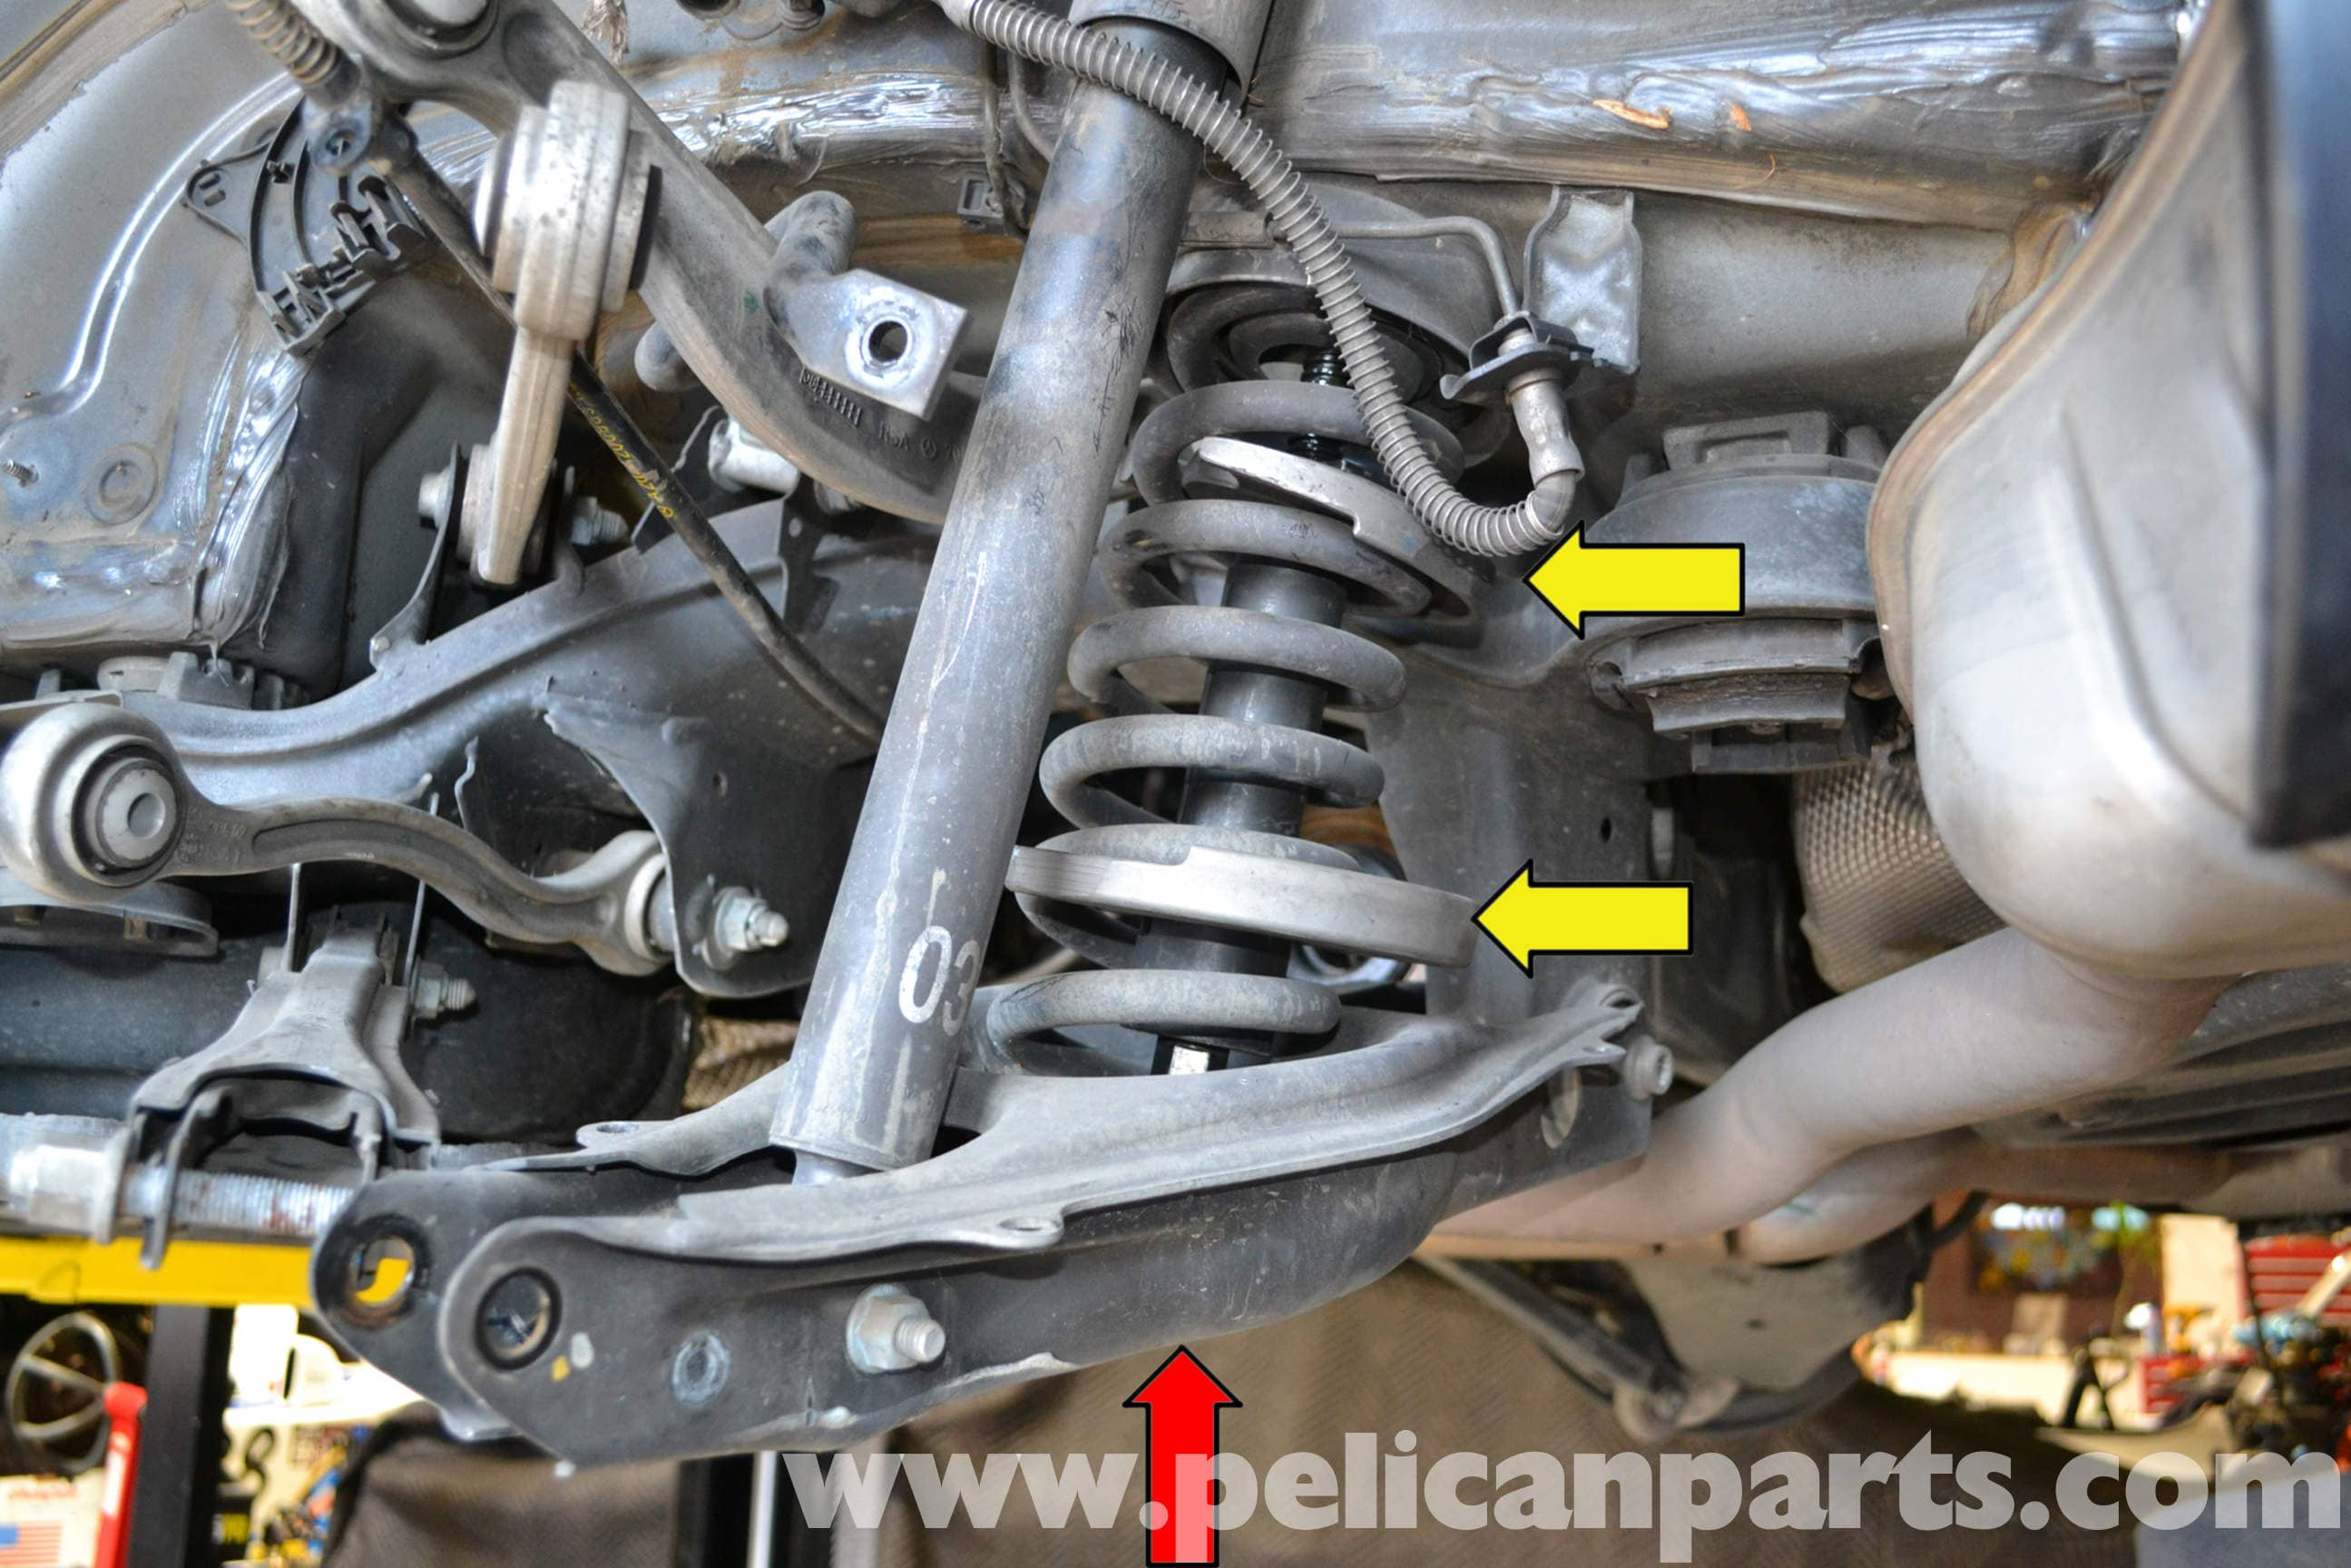 Mercedes Benz W204 Rear Multi Link Suspension Replacement